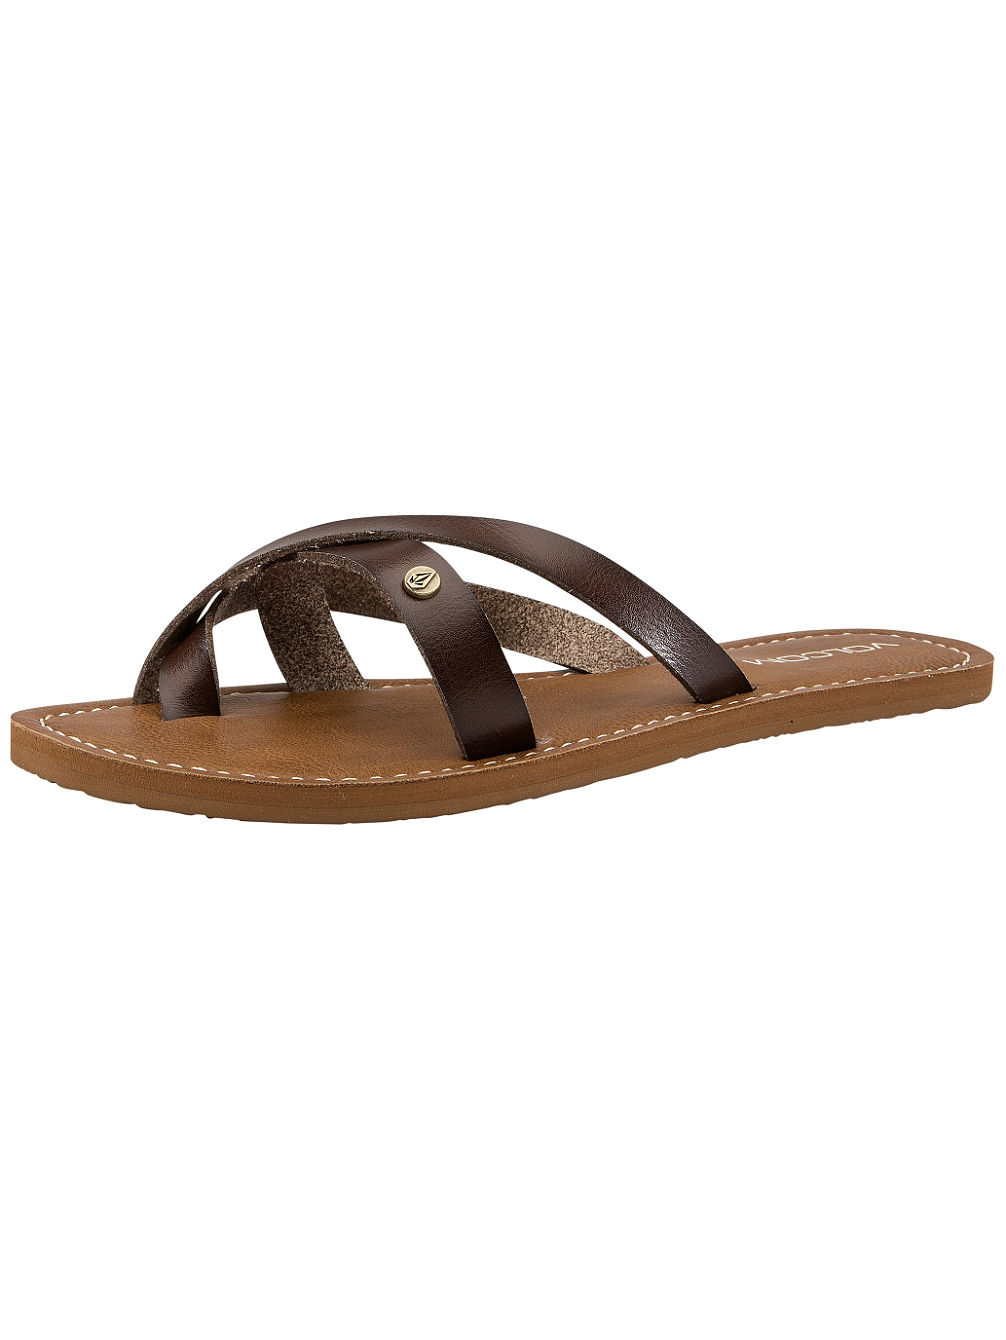 Ramble Sandals Women